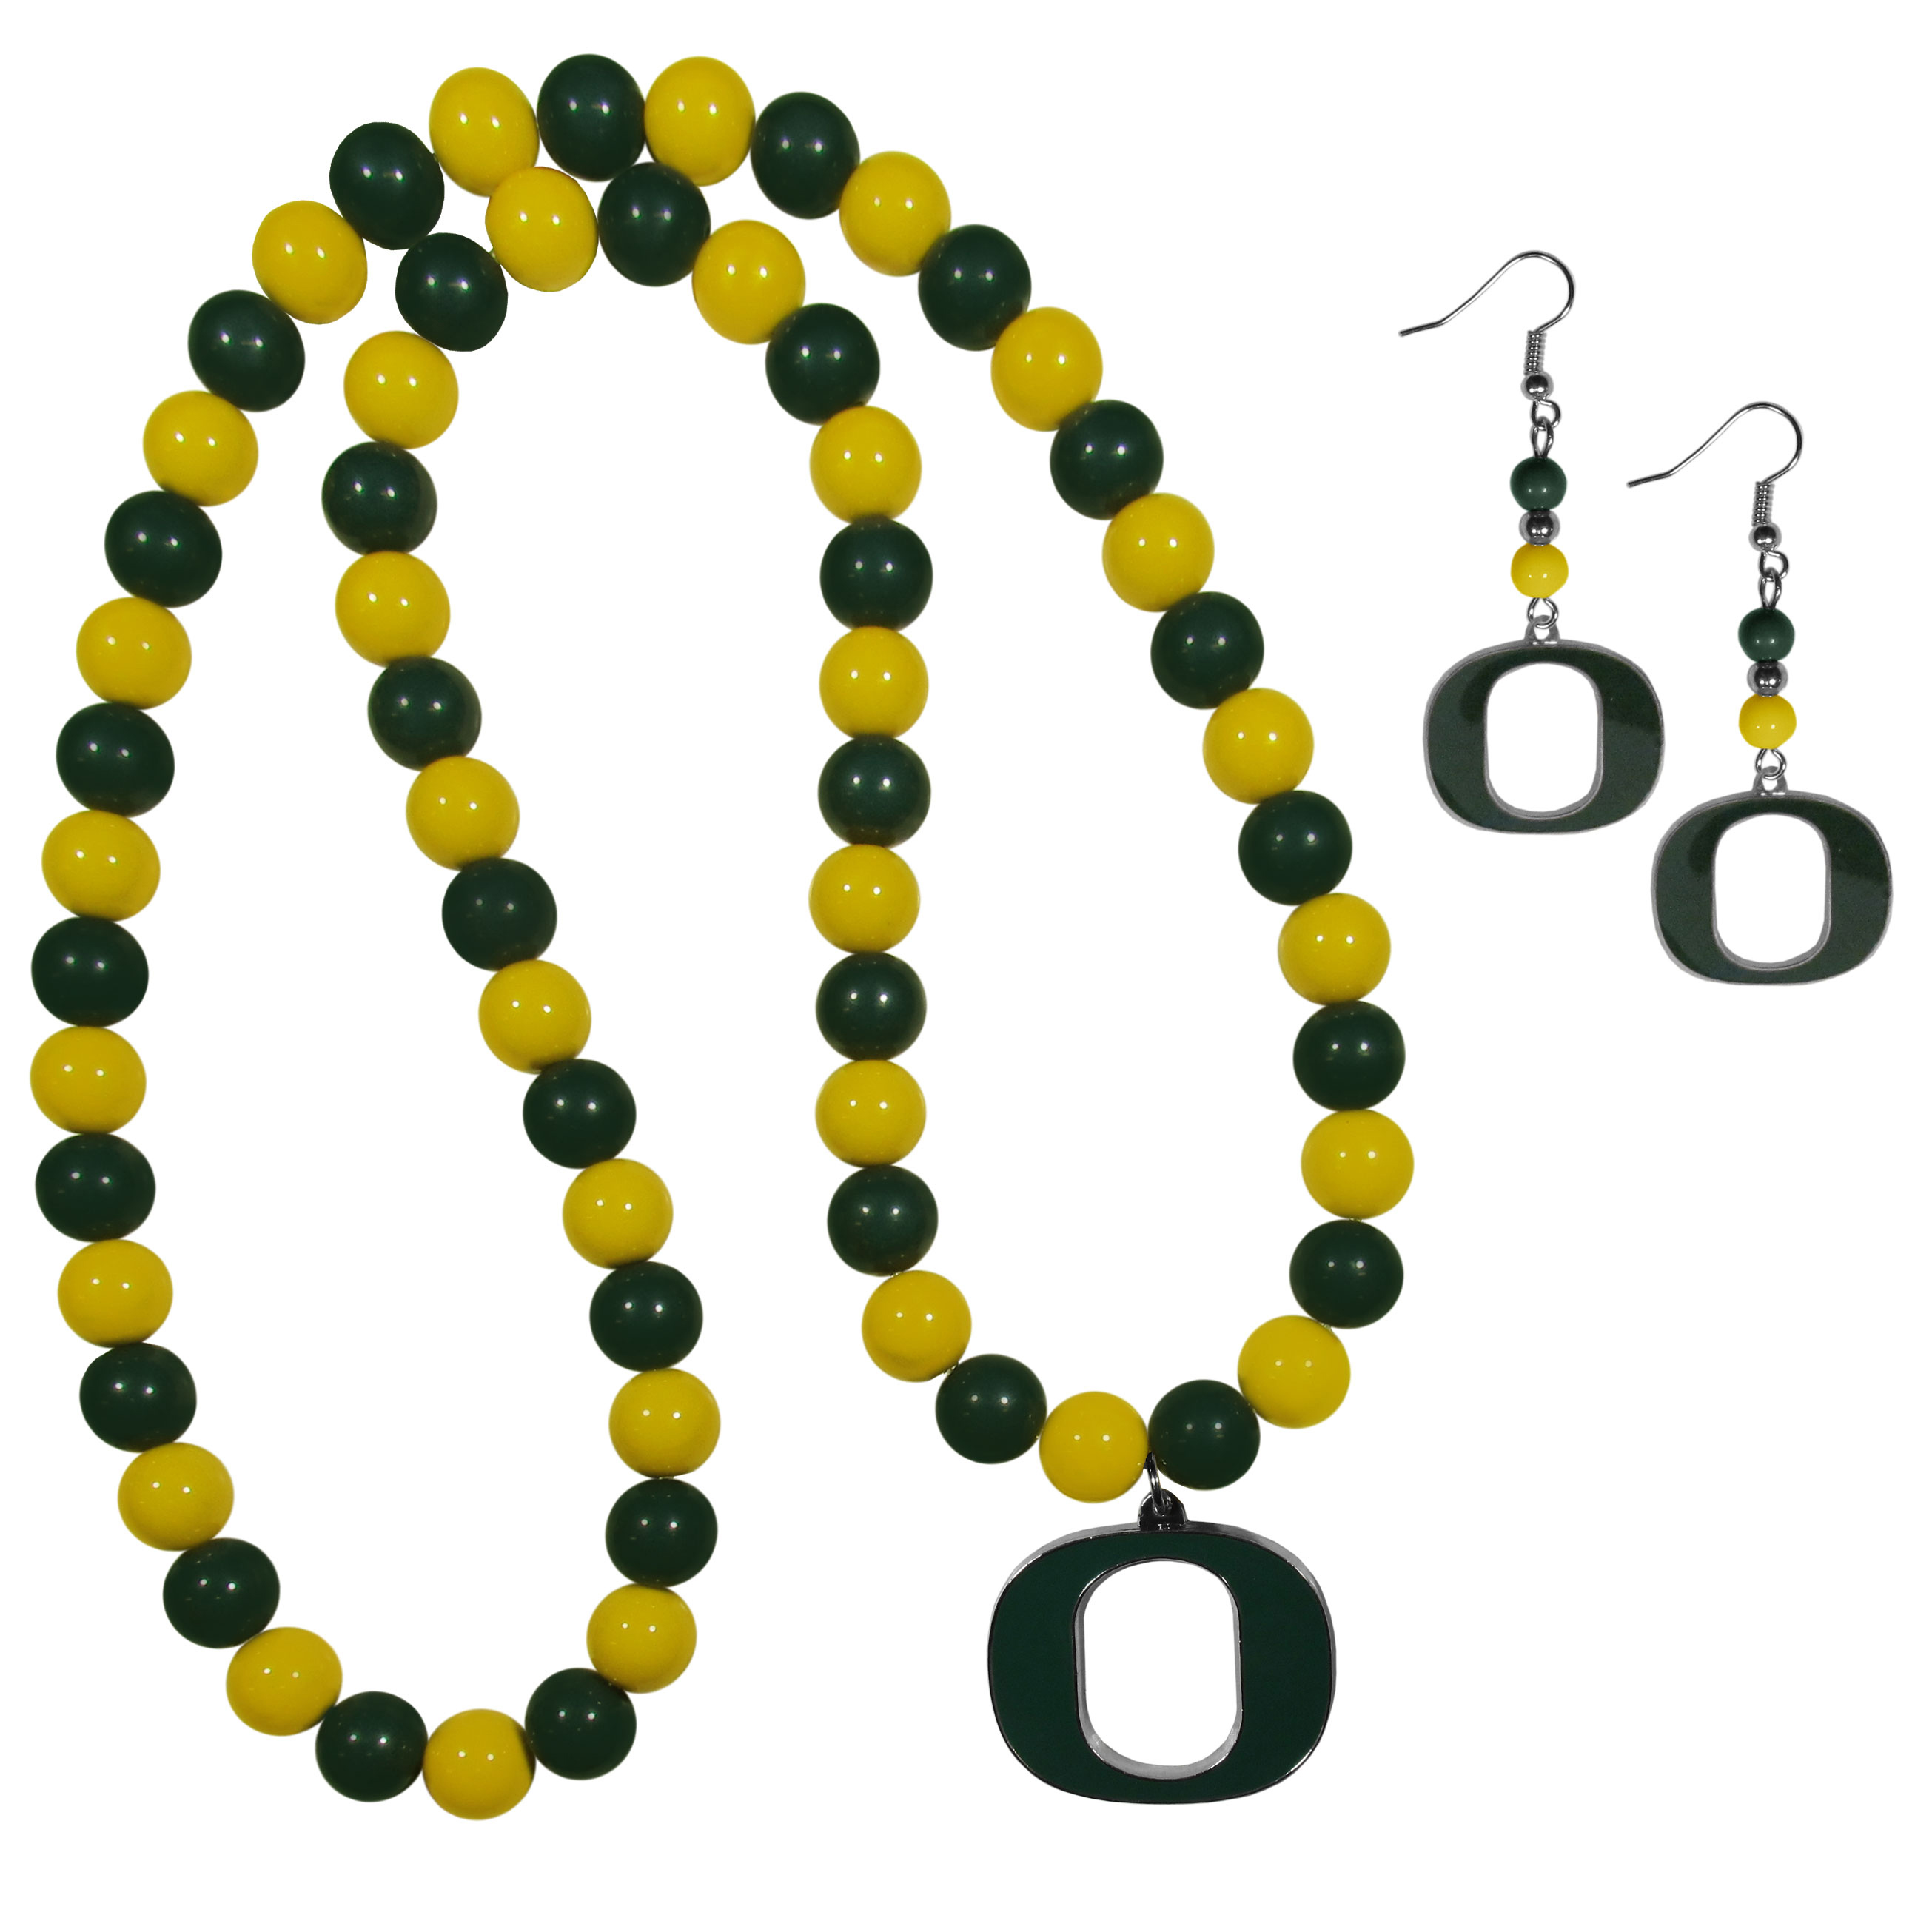 Oregon Ducks Fan Bead Earrings and Necklace Set - These fun and colorful Oregon Ducks fan bead jewelry pieces are an eyecatching way to show off your team spirit. The earrings feature hypoallergenic, nickel free fishhook post and 2 team colored beads with a beautifully carved team charm to finish this attractive dangle look. The mathcing bracelet has alternating team colored beads on a stretch cord and features a matching team charm.